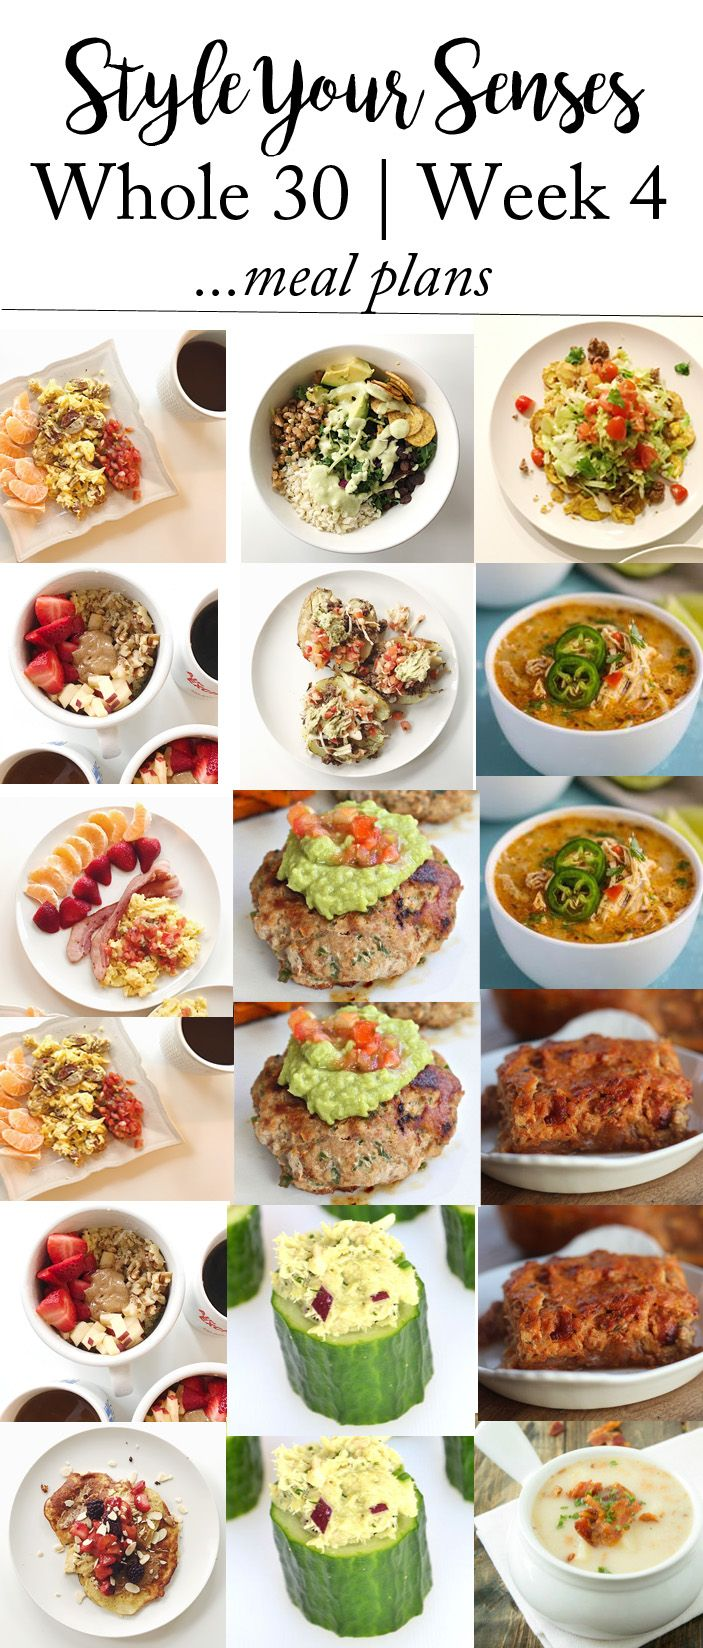 Sharing a full Whole30 Week 3 update + Meal Plans for 4! See how I'm feeling, what meals I'm loving and what I have planned for the coming week!